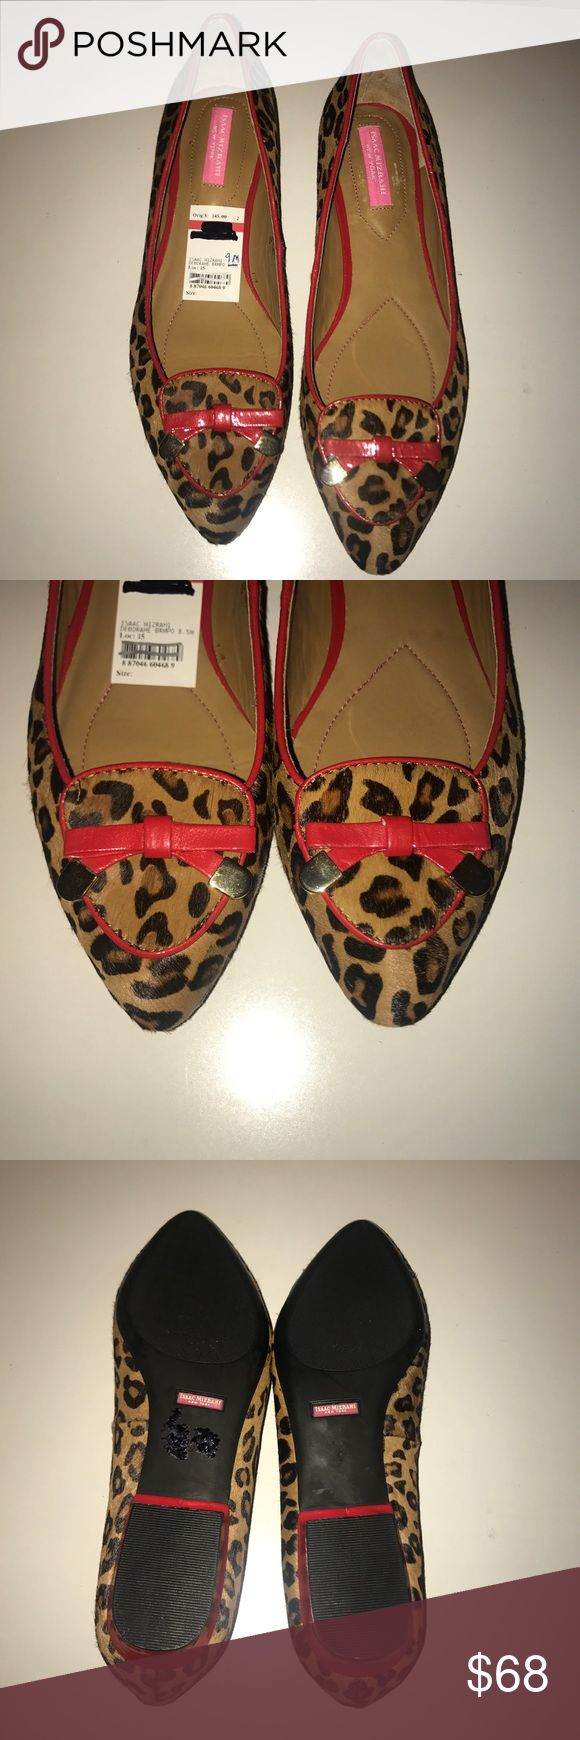 💜ISSAC MIZRAHI💜Pony Hair Leopard Loafers/Flats NWT 💜ISSAC MIZRAHI New York💜Pony Hair Leopard Loafers/Flats. Red Patent leather trim. Cushioned insole. Size -9M. Original cost $145 Issac Mizrahi New York Shoes Flats & Loafers